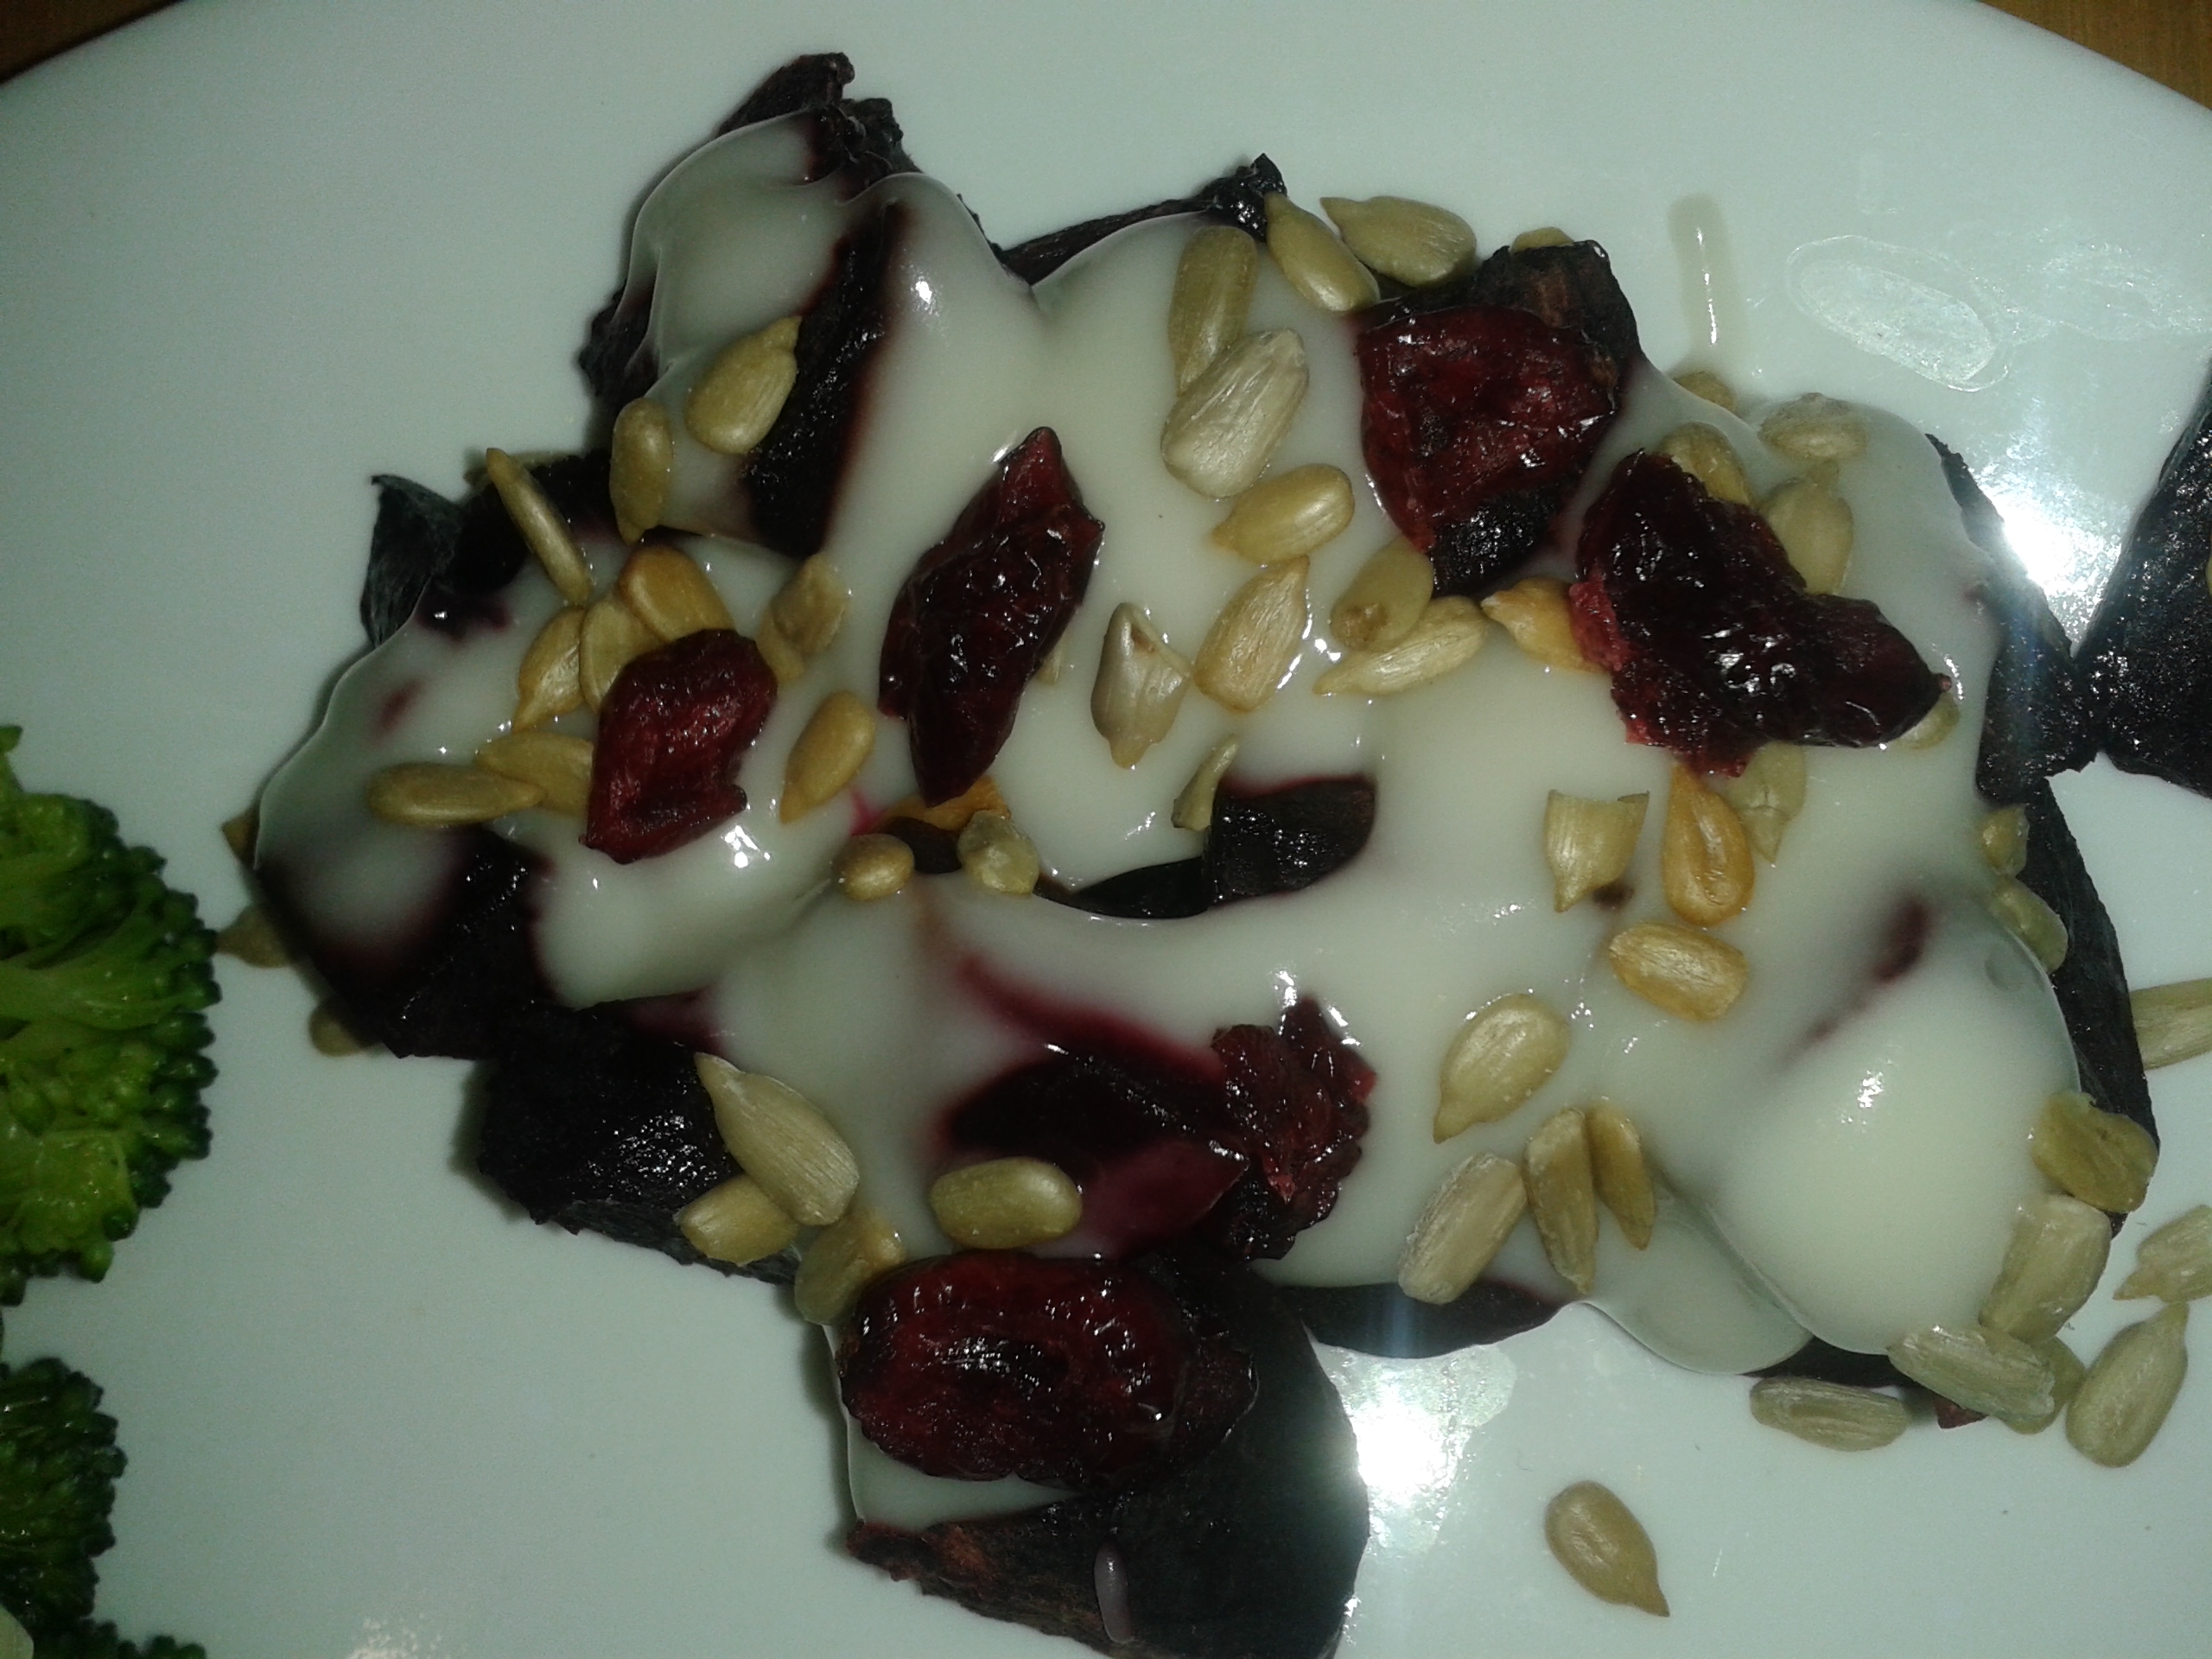 Baked Beets topped with Cultured Coconut Cream and Sunflower Seeds